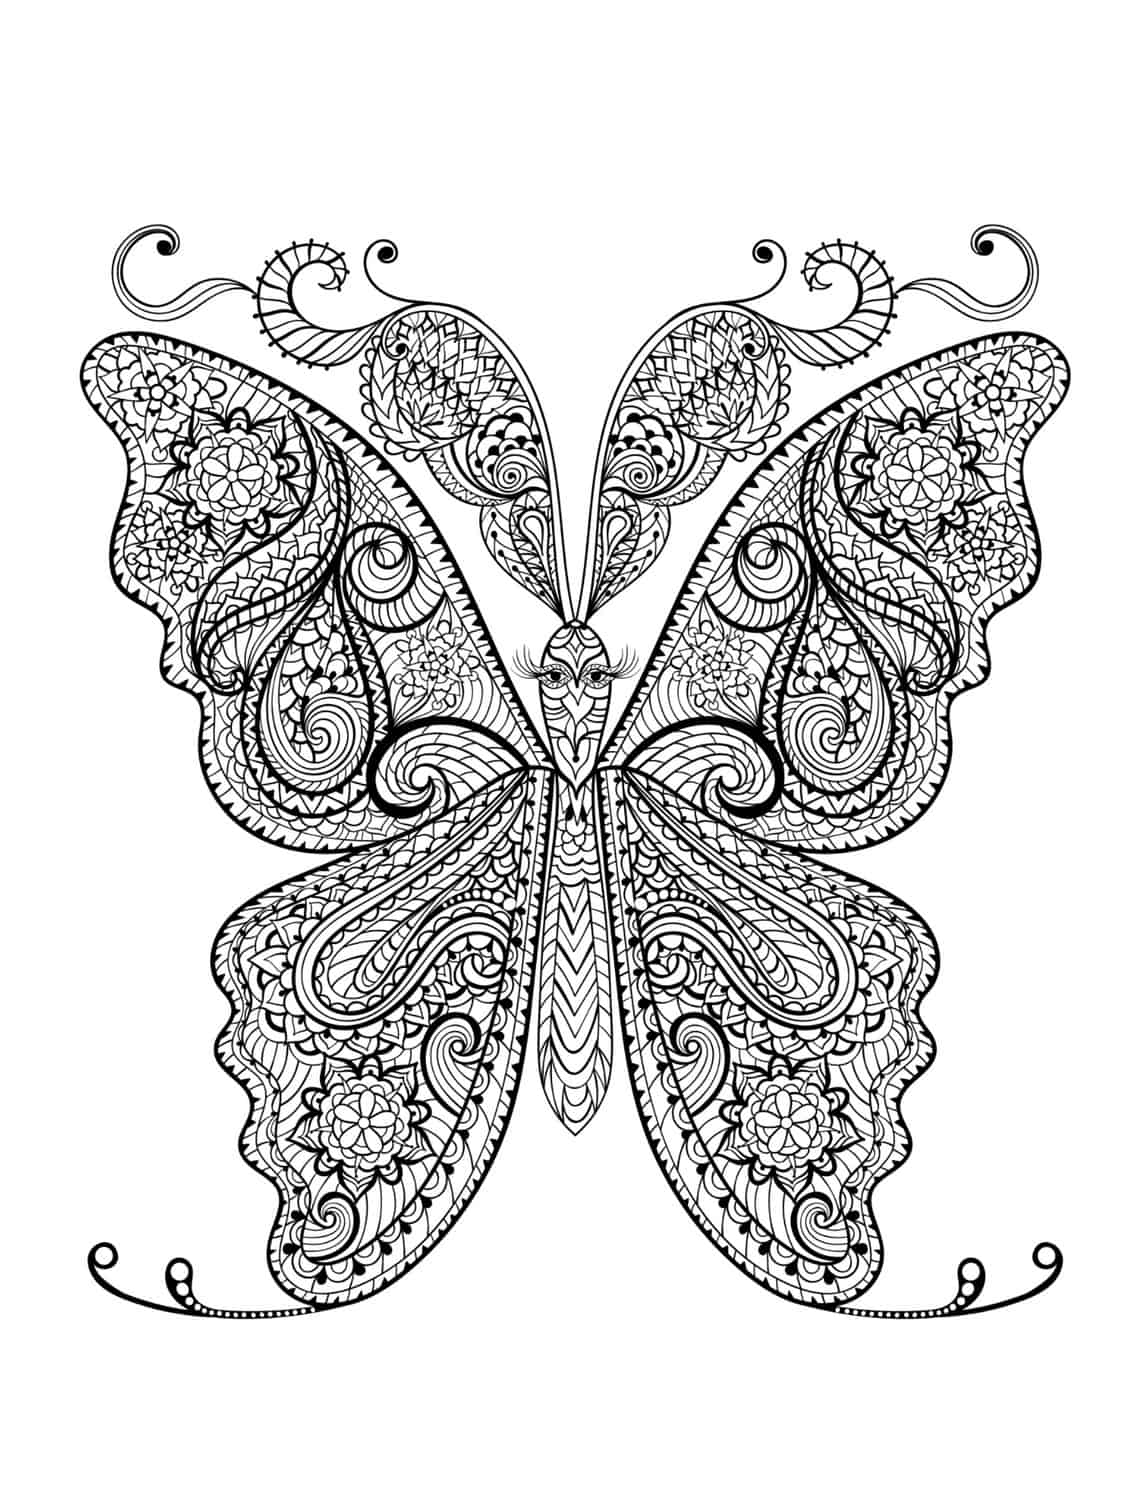 insect coloring pictures 23 free printable insect animal adult coloring pages insect pictures coloring